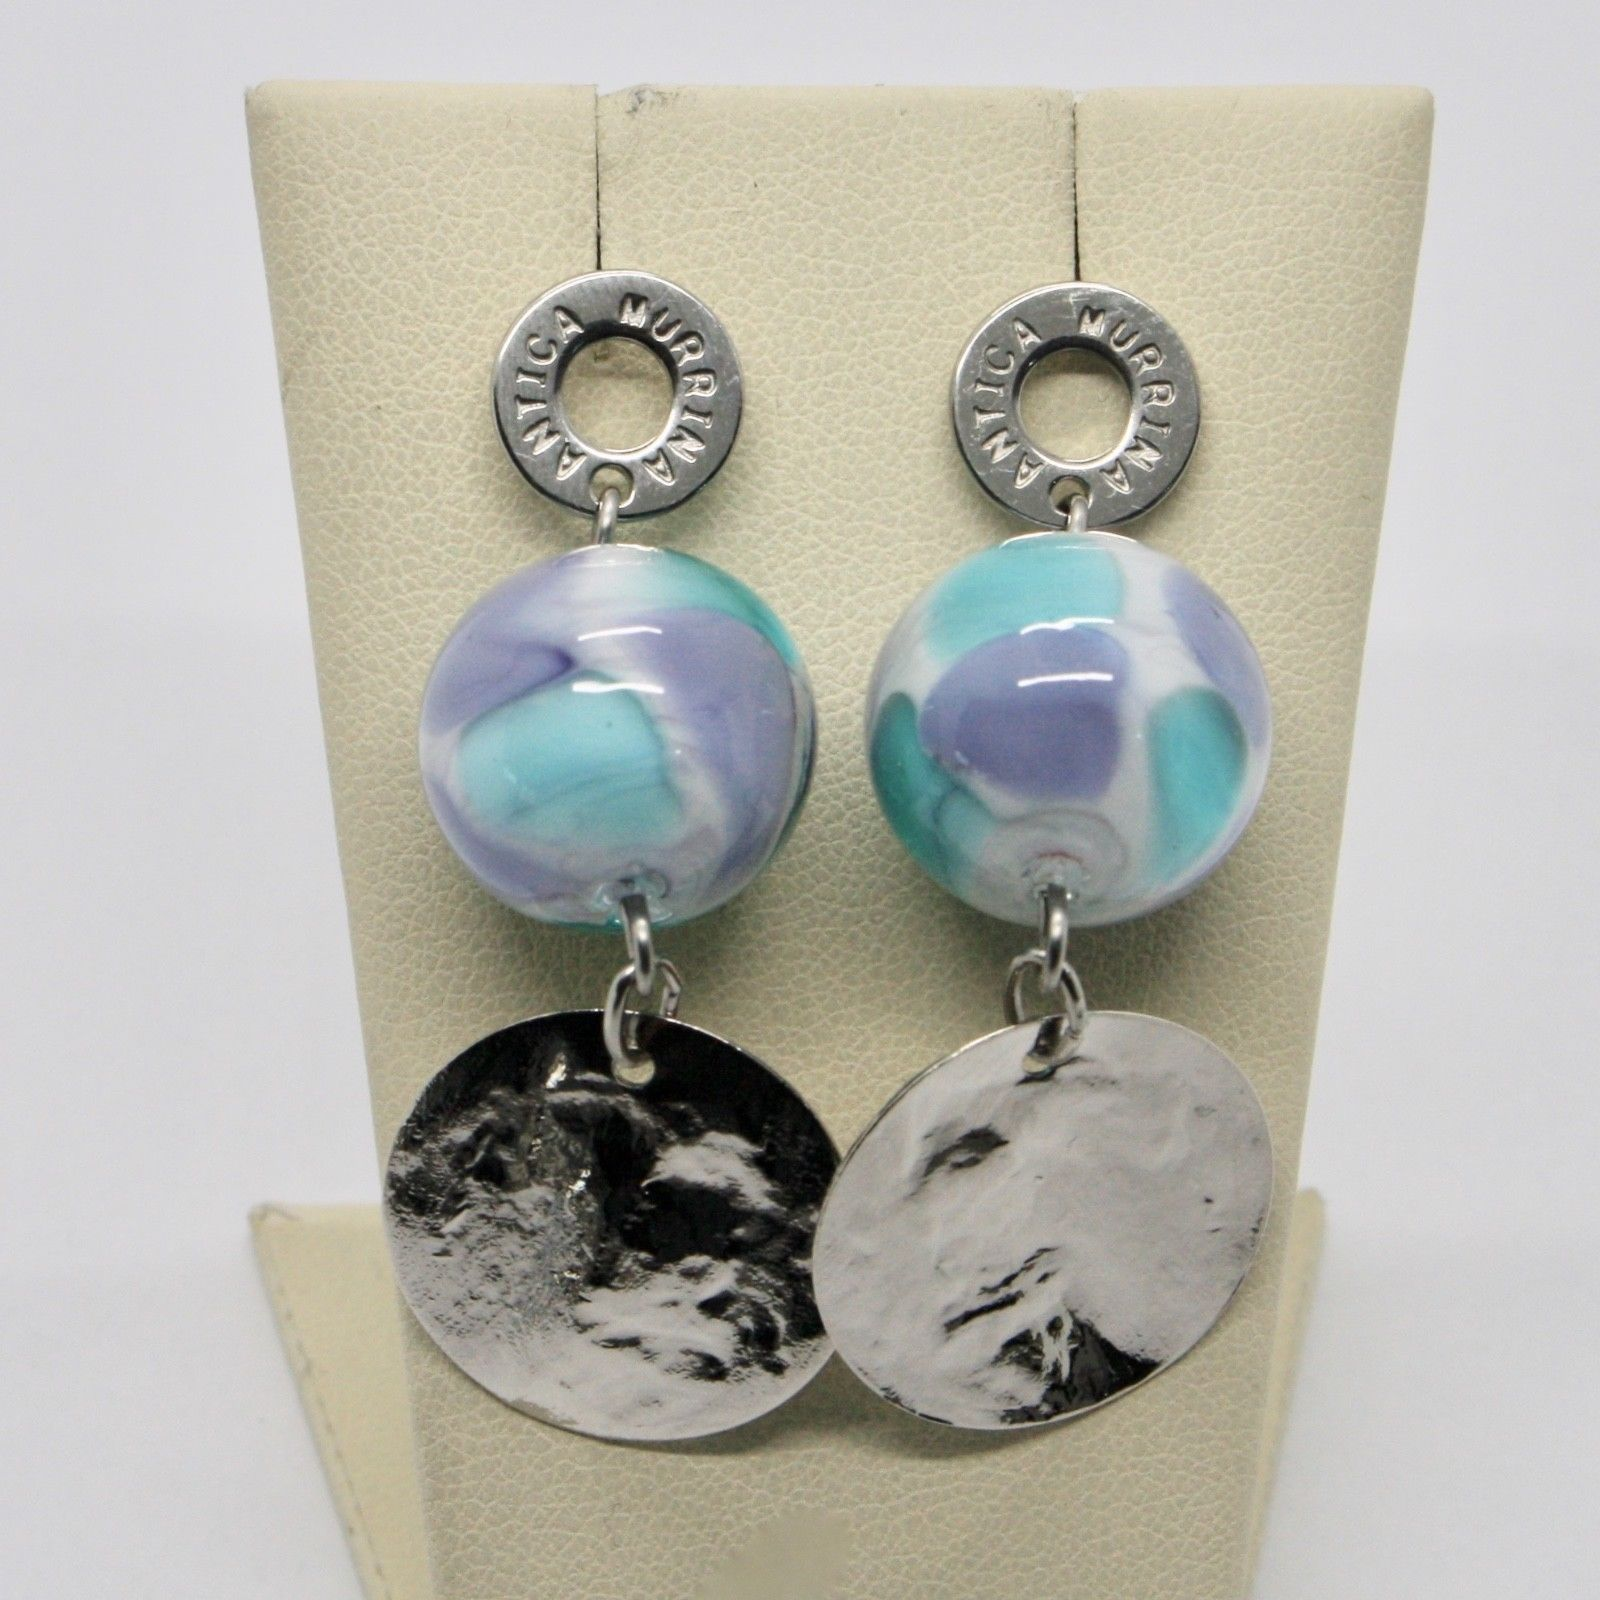 EARRINGS ANTICA MURRINA VENEZIA WITH MURANO GLASS PURPLE WHITE BLUE OR587A07